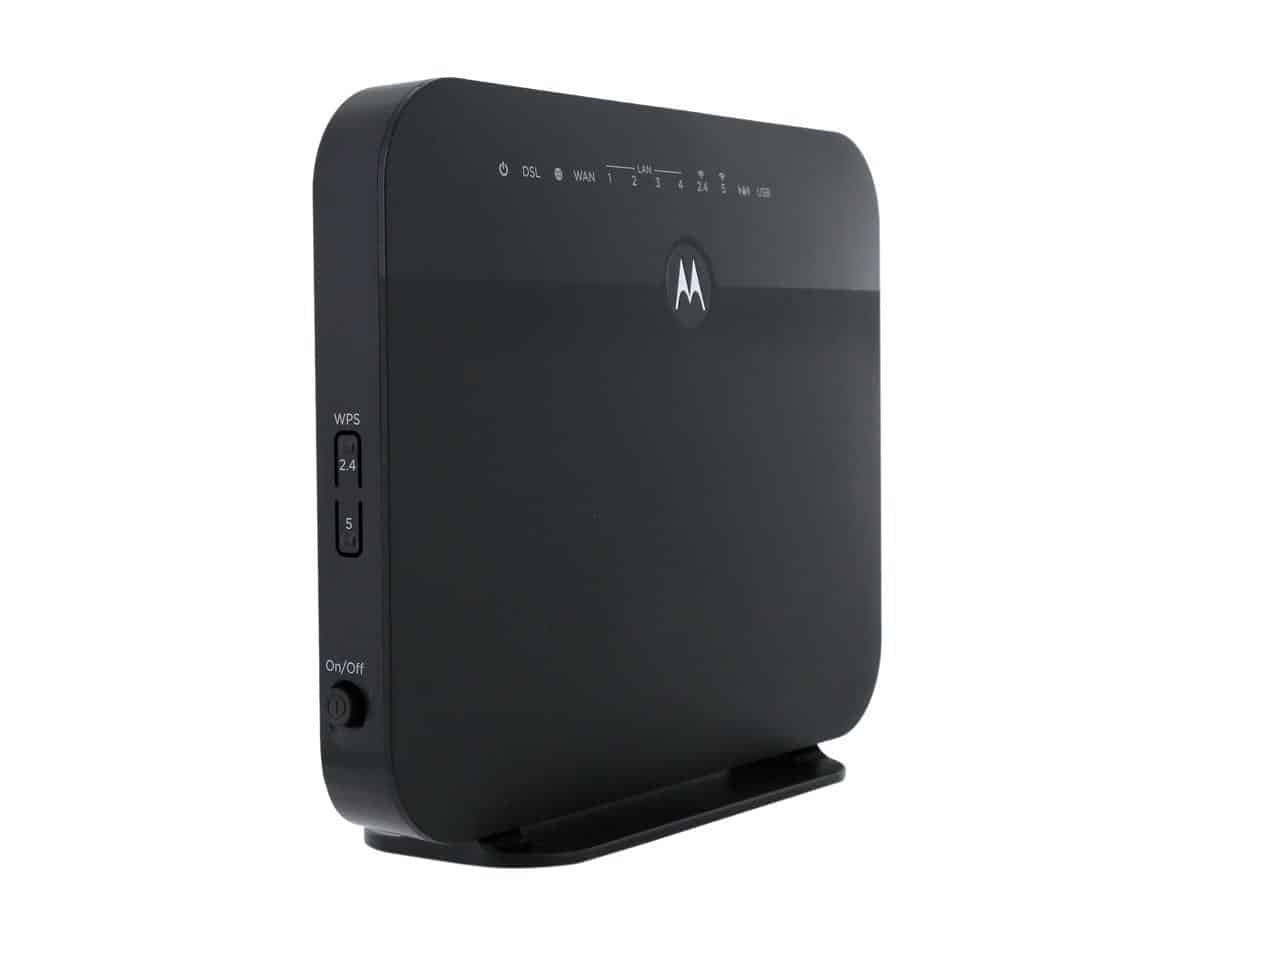 Routers for frontier FiOS